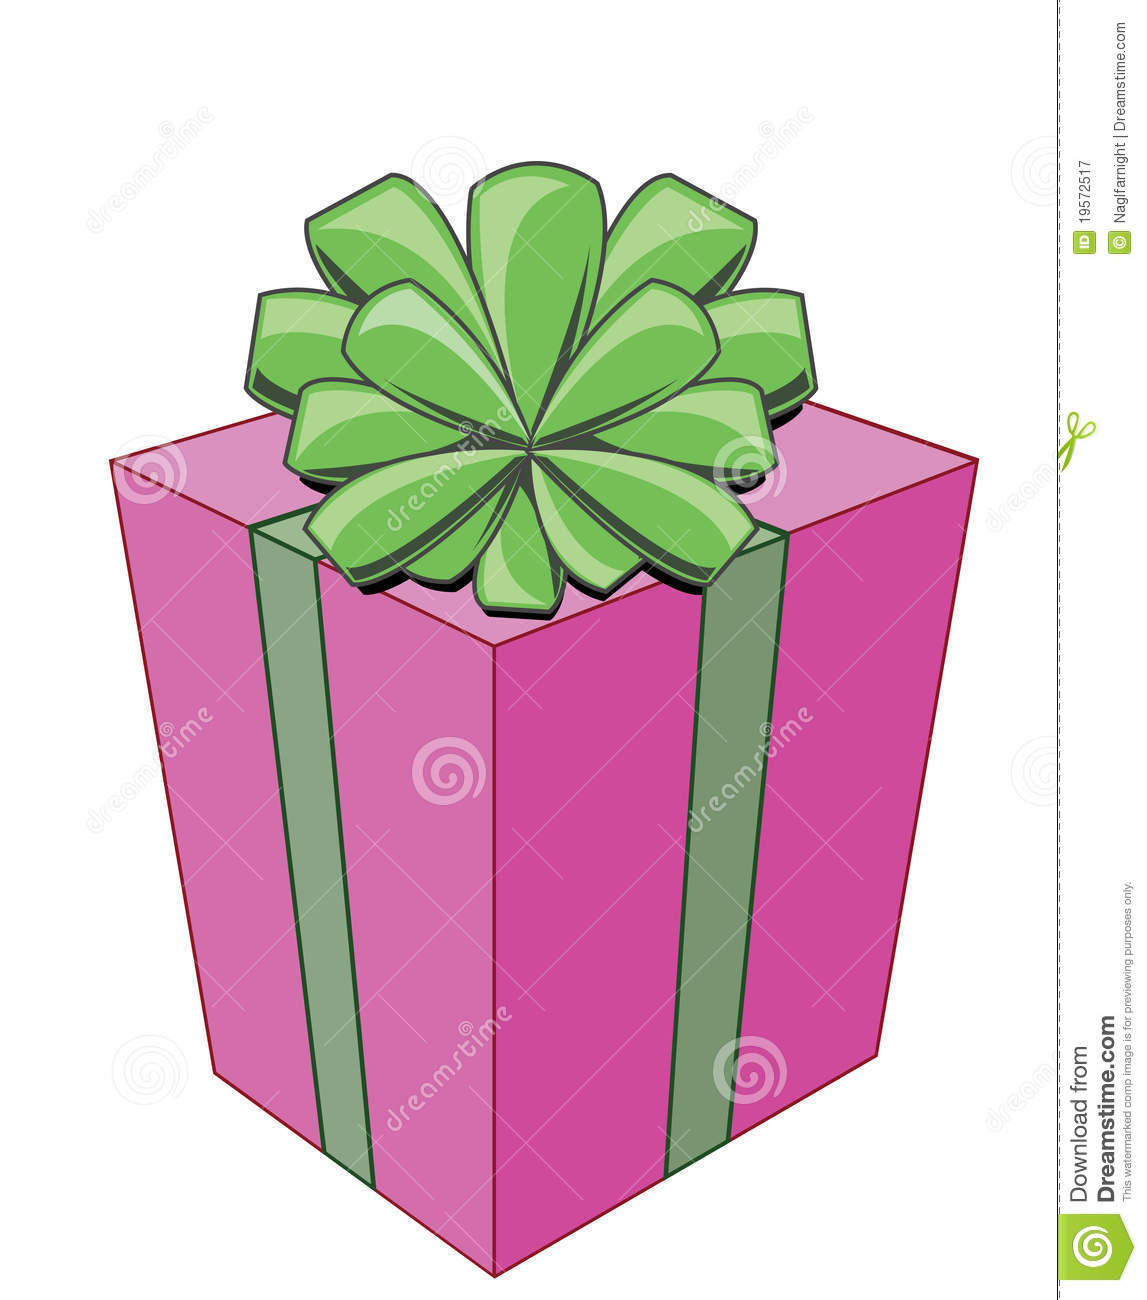 Cartoon. Bright Gift Box With Bow For Celebration Royalty Free Stock ...